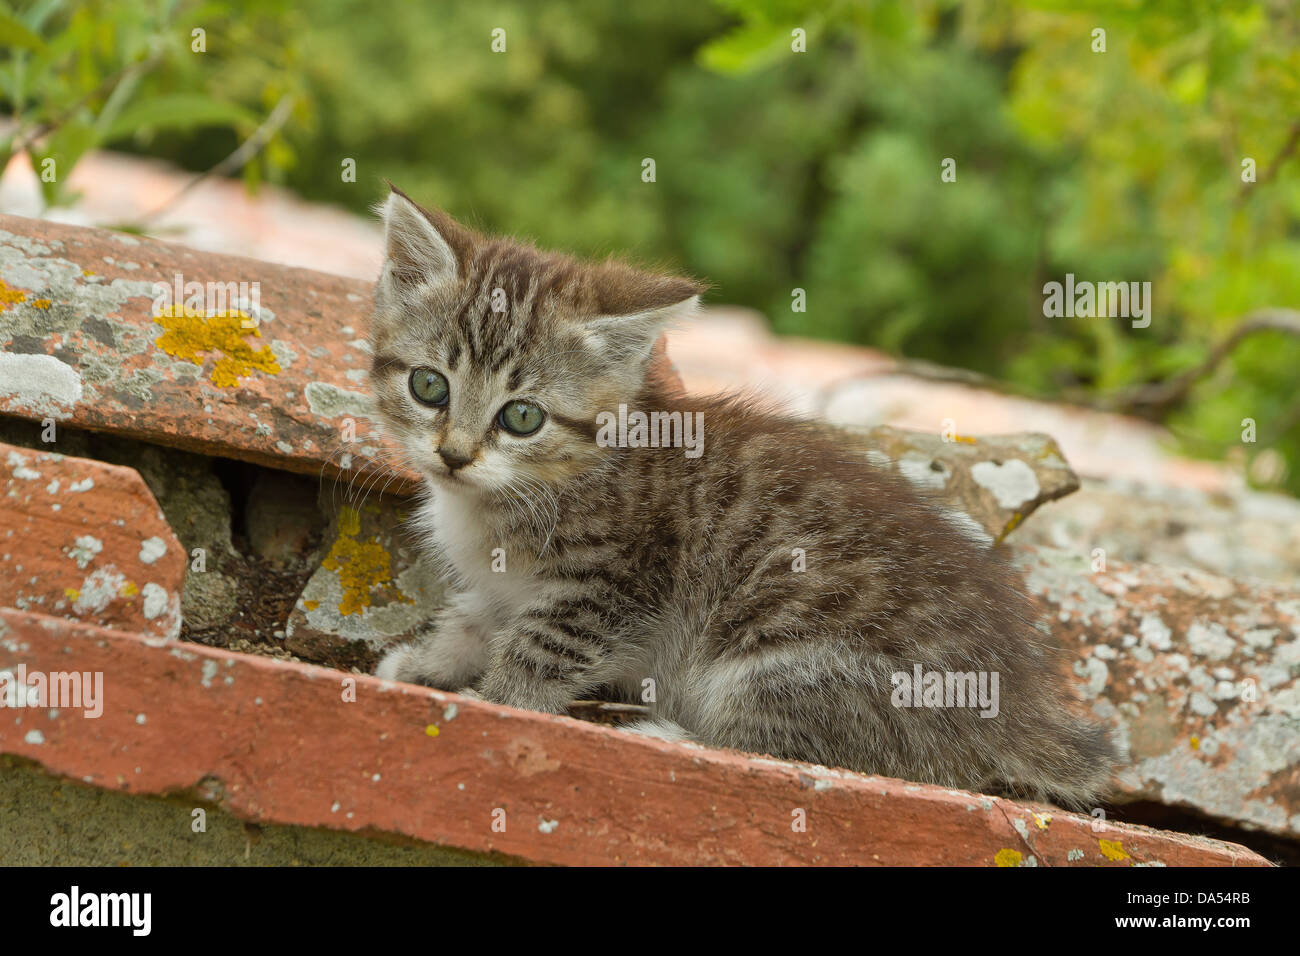 Animal, chat, chaton, jeune, jardin, animal domestique, animal, Photo Stock